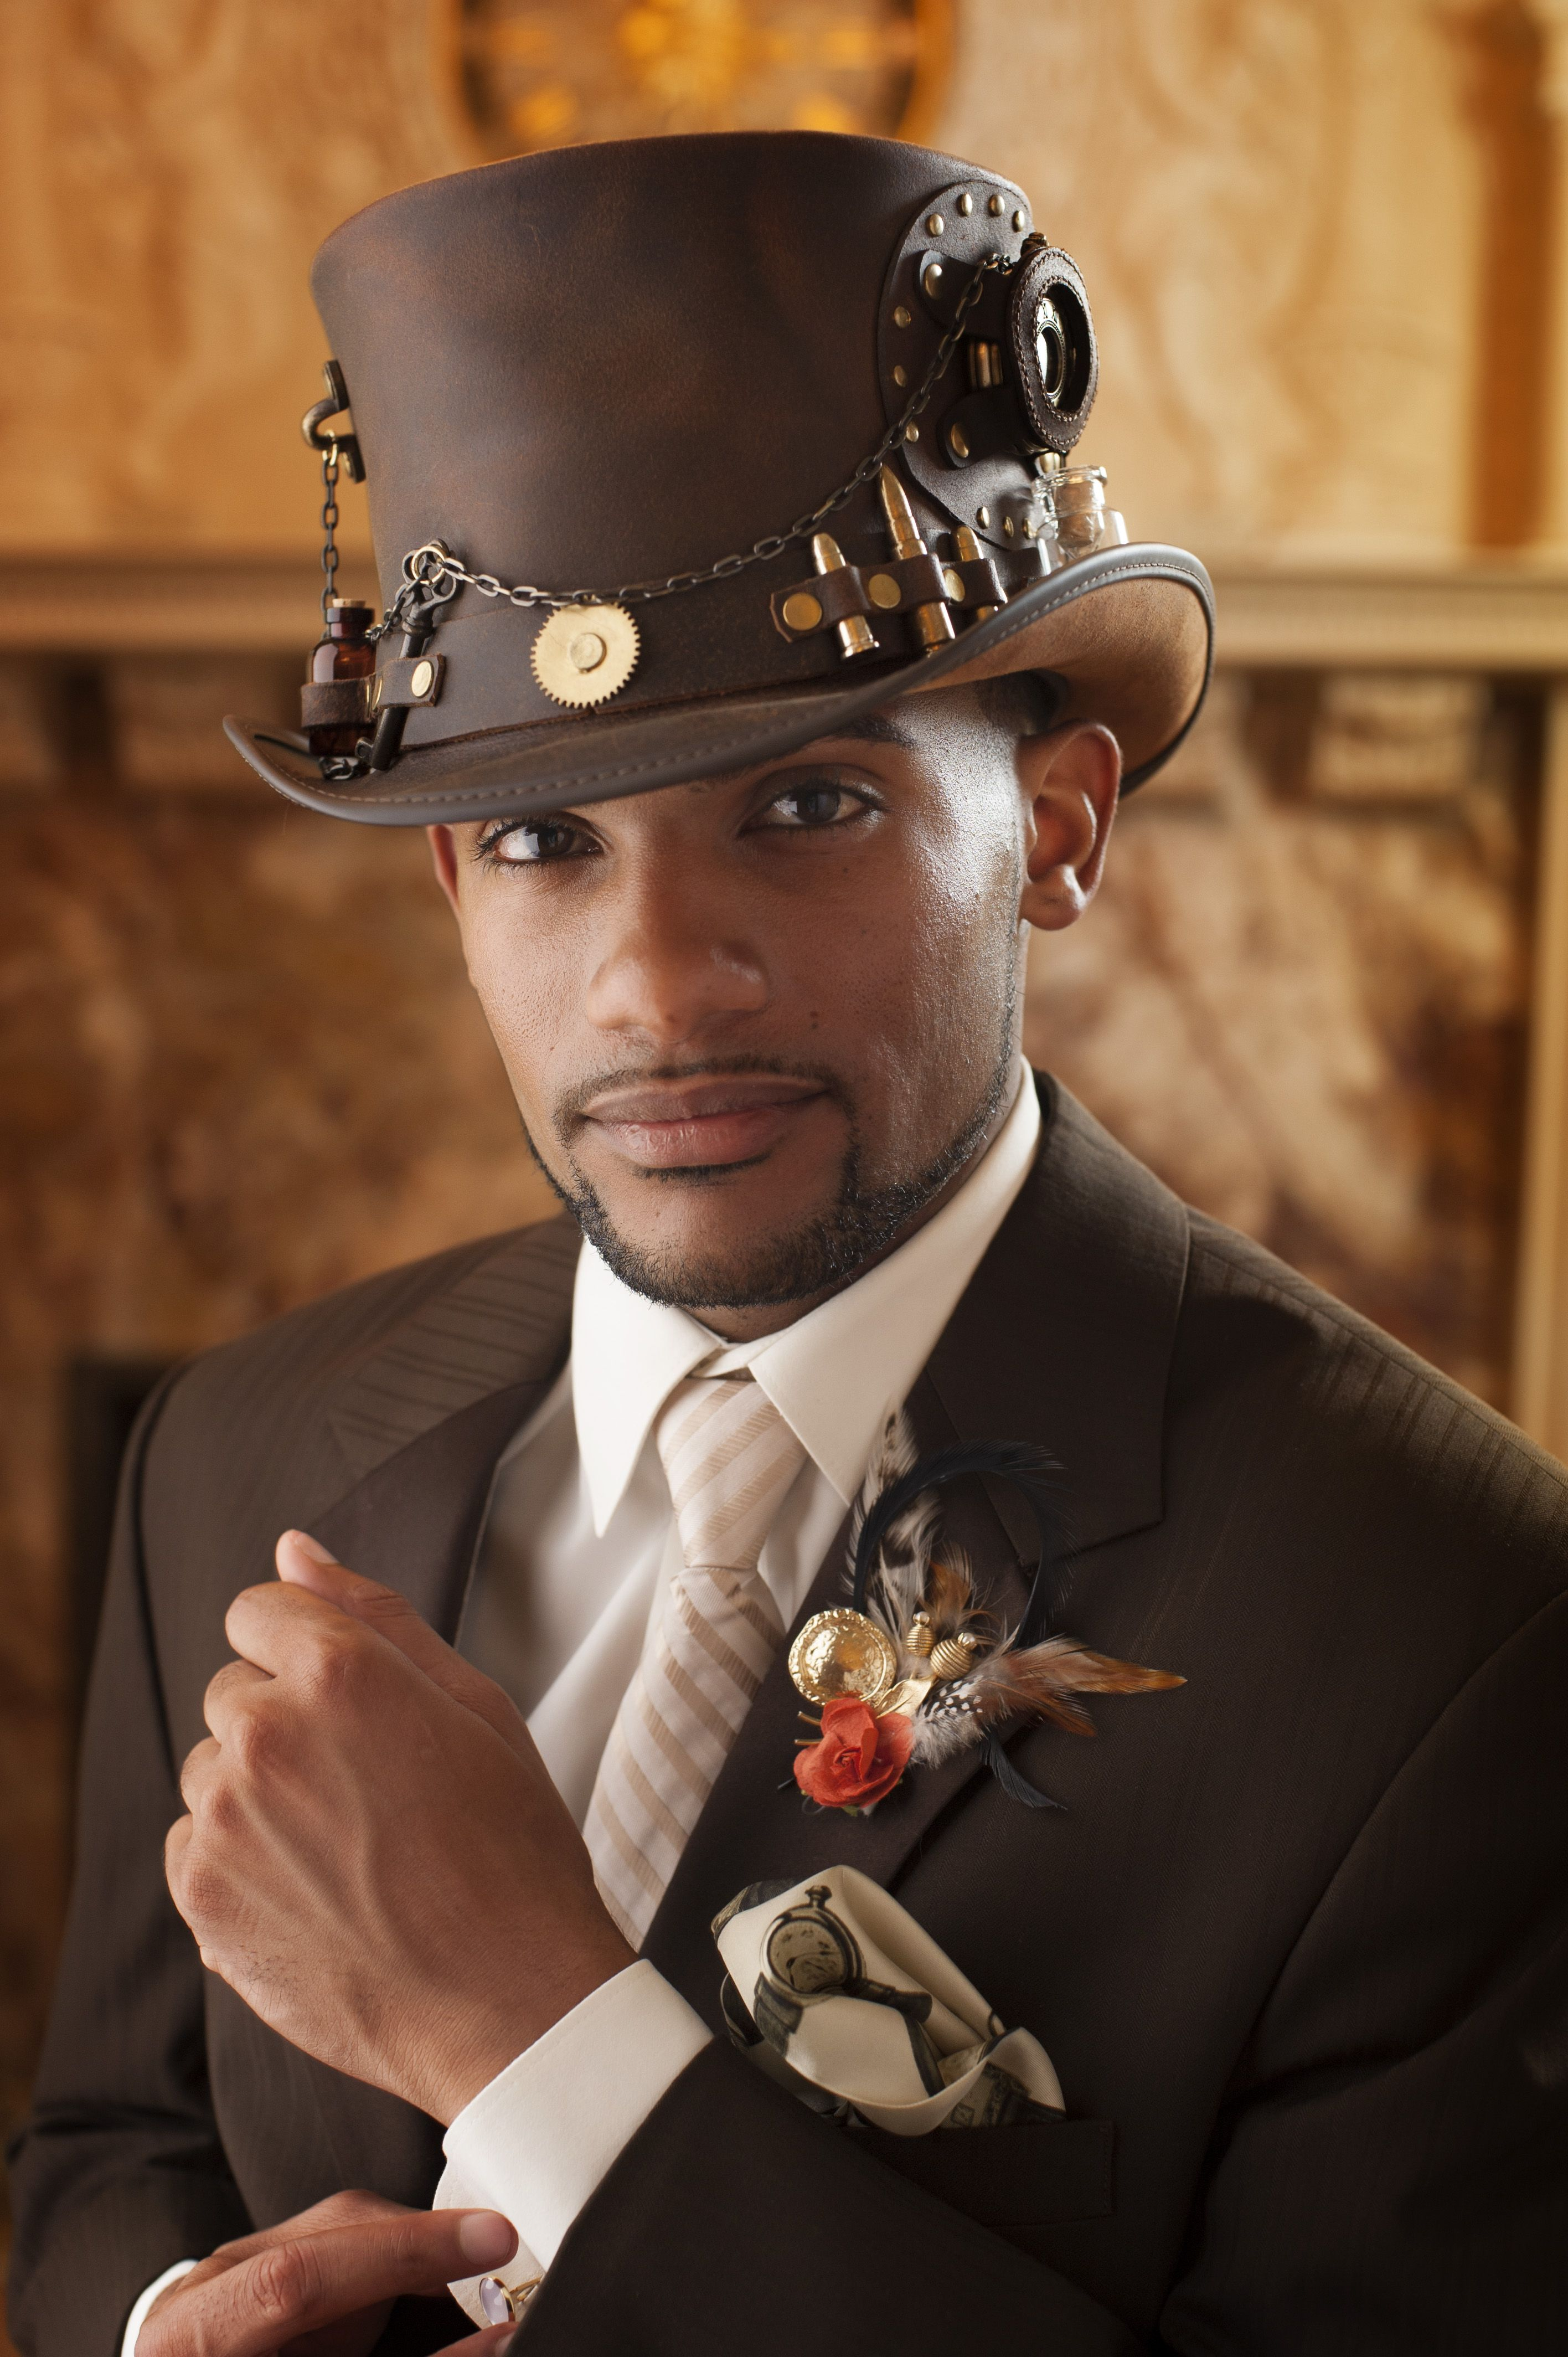 cf079b2db8 8 Steampunk Outfit For Guys To Get That Steamy Look